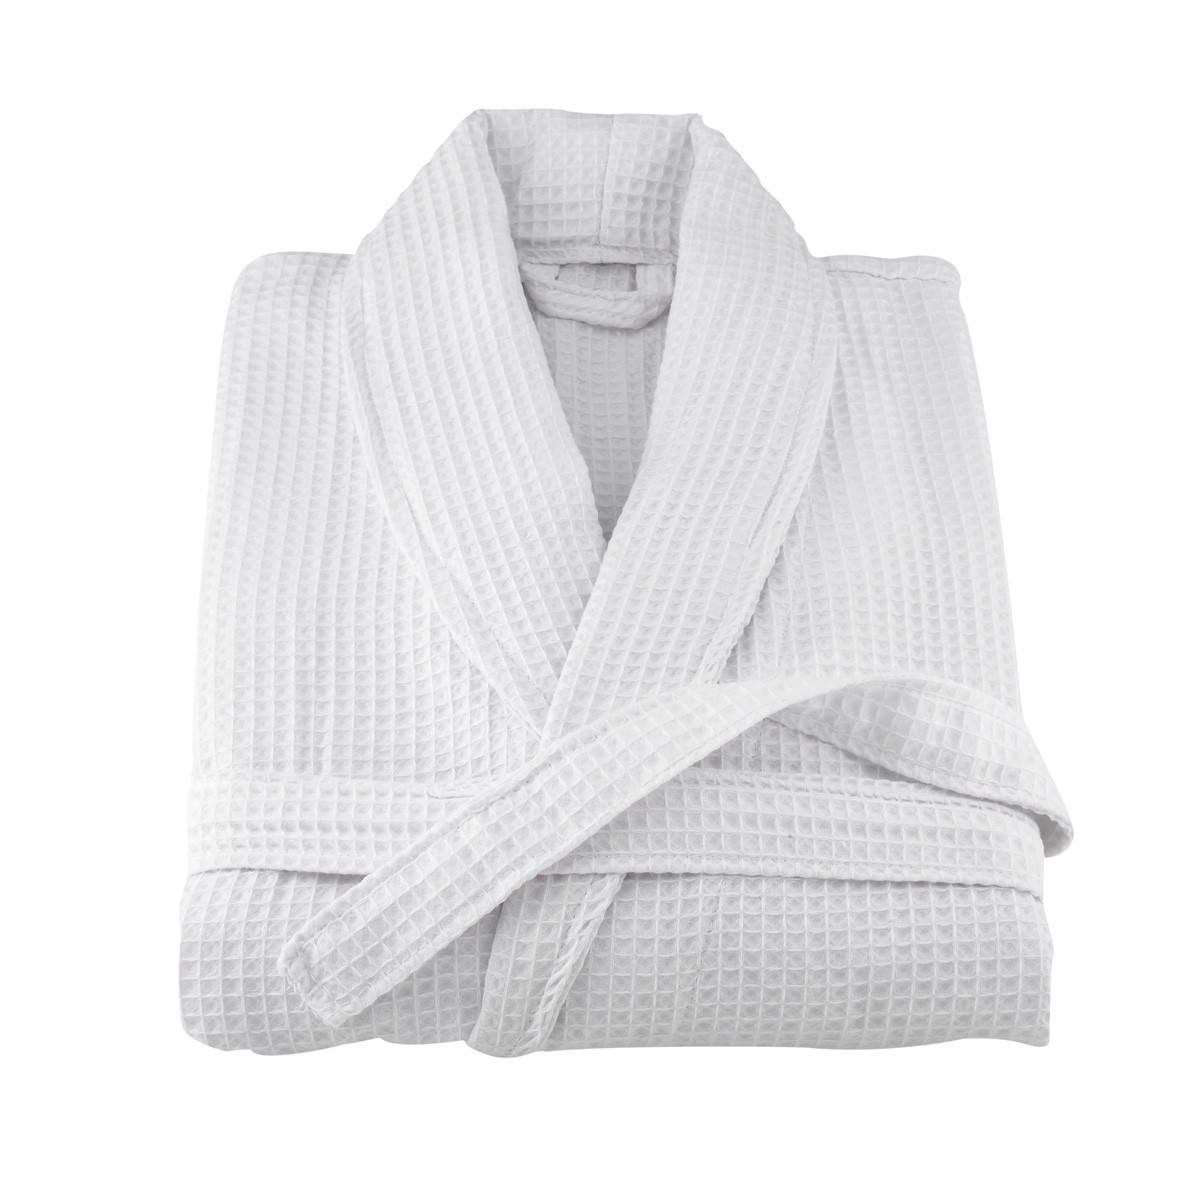 Bath Robe, Deluxe Waffle Weave, White